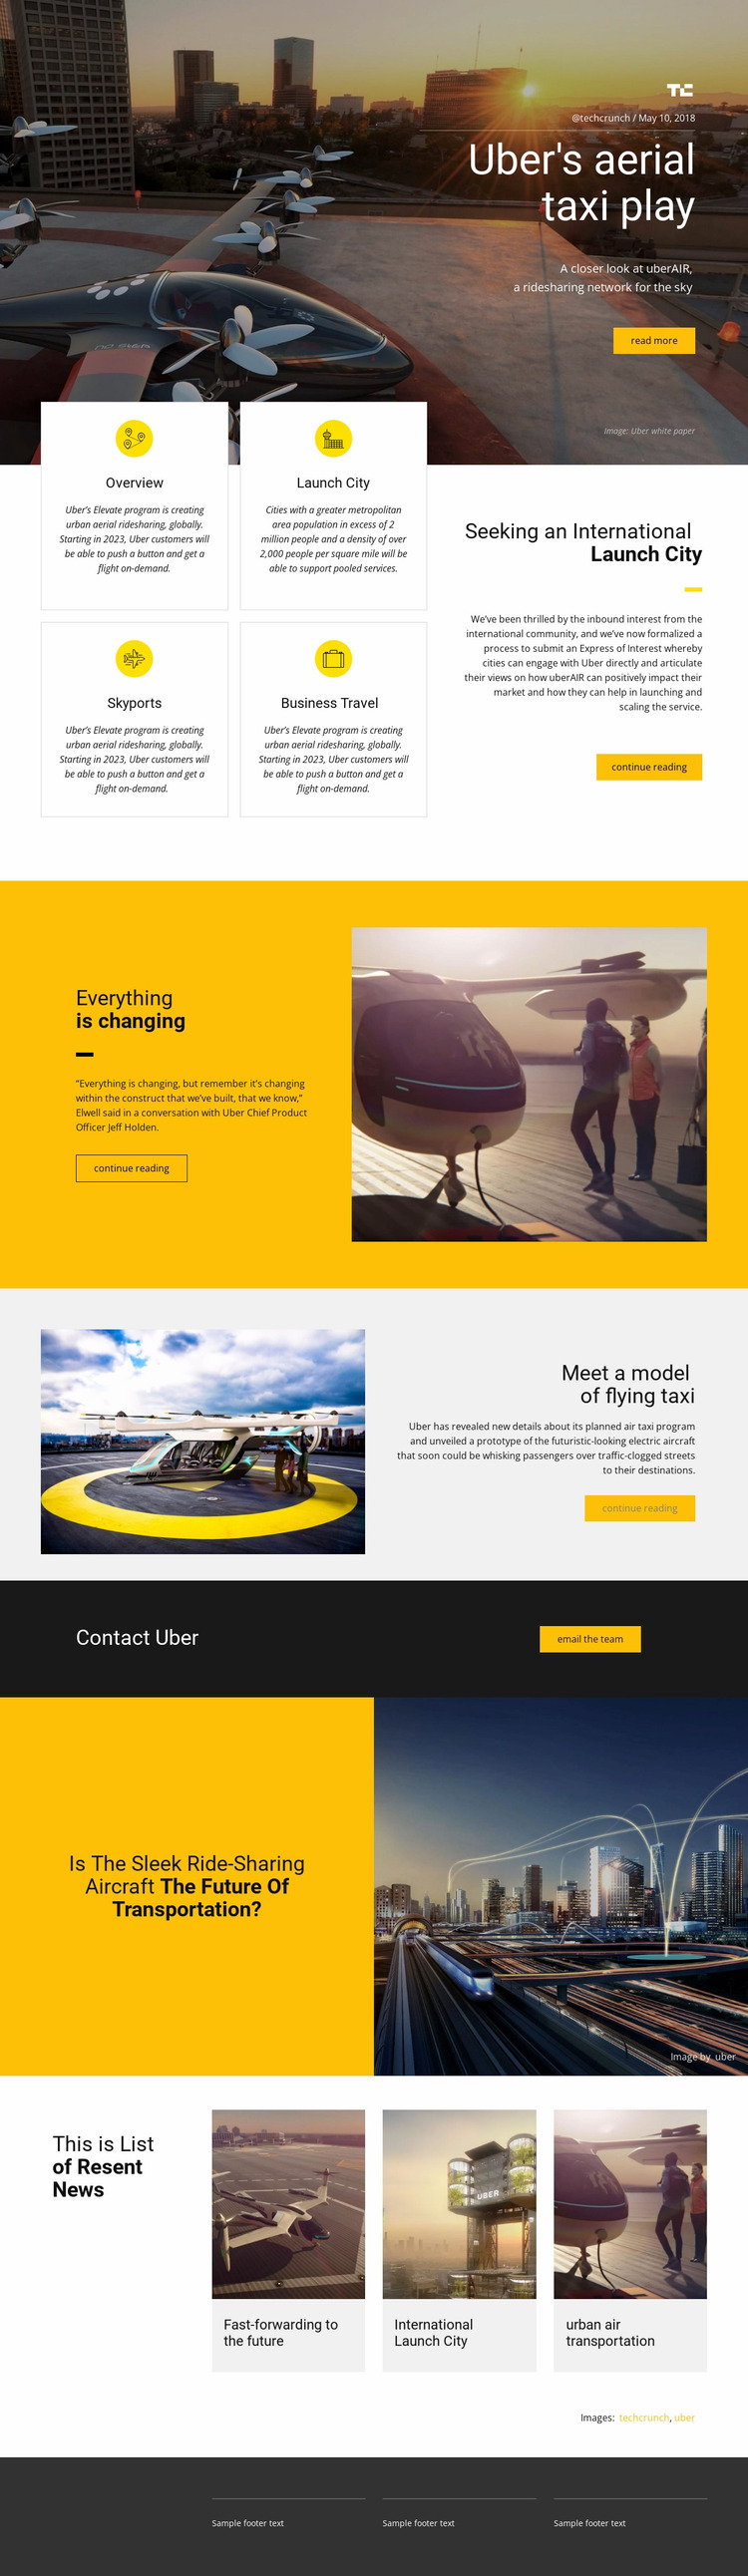 Uber's Aerial Taxi Play Website Mockup